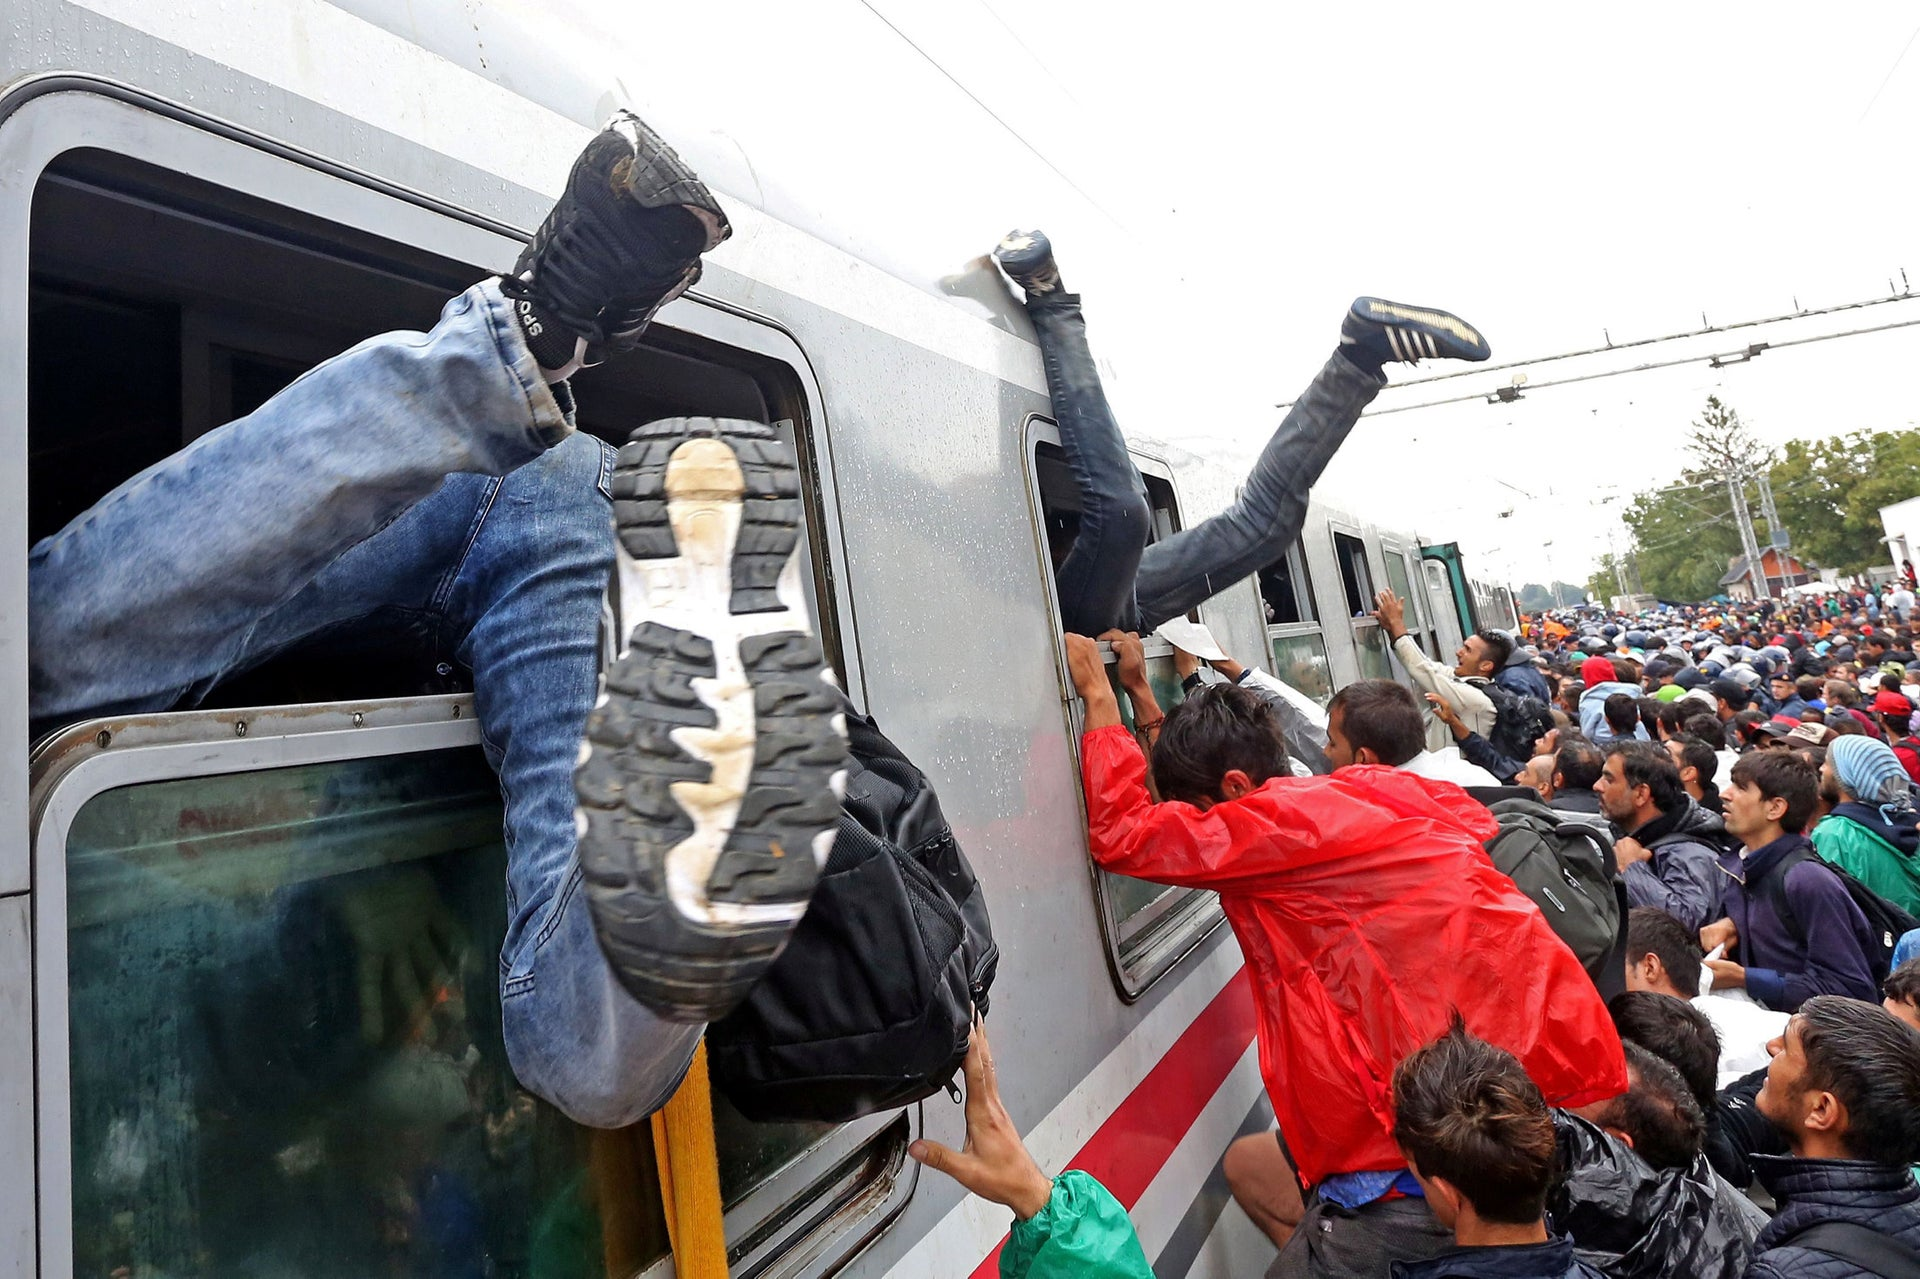 Migrants rush to board a train heading to the Hungarian border near the town of Botovo, at the train station in the eastern Croatia town of Tovarnik, on September 20, 2015.